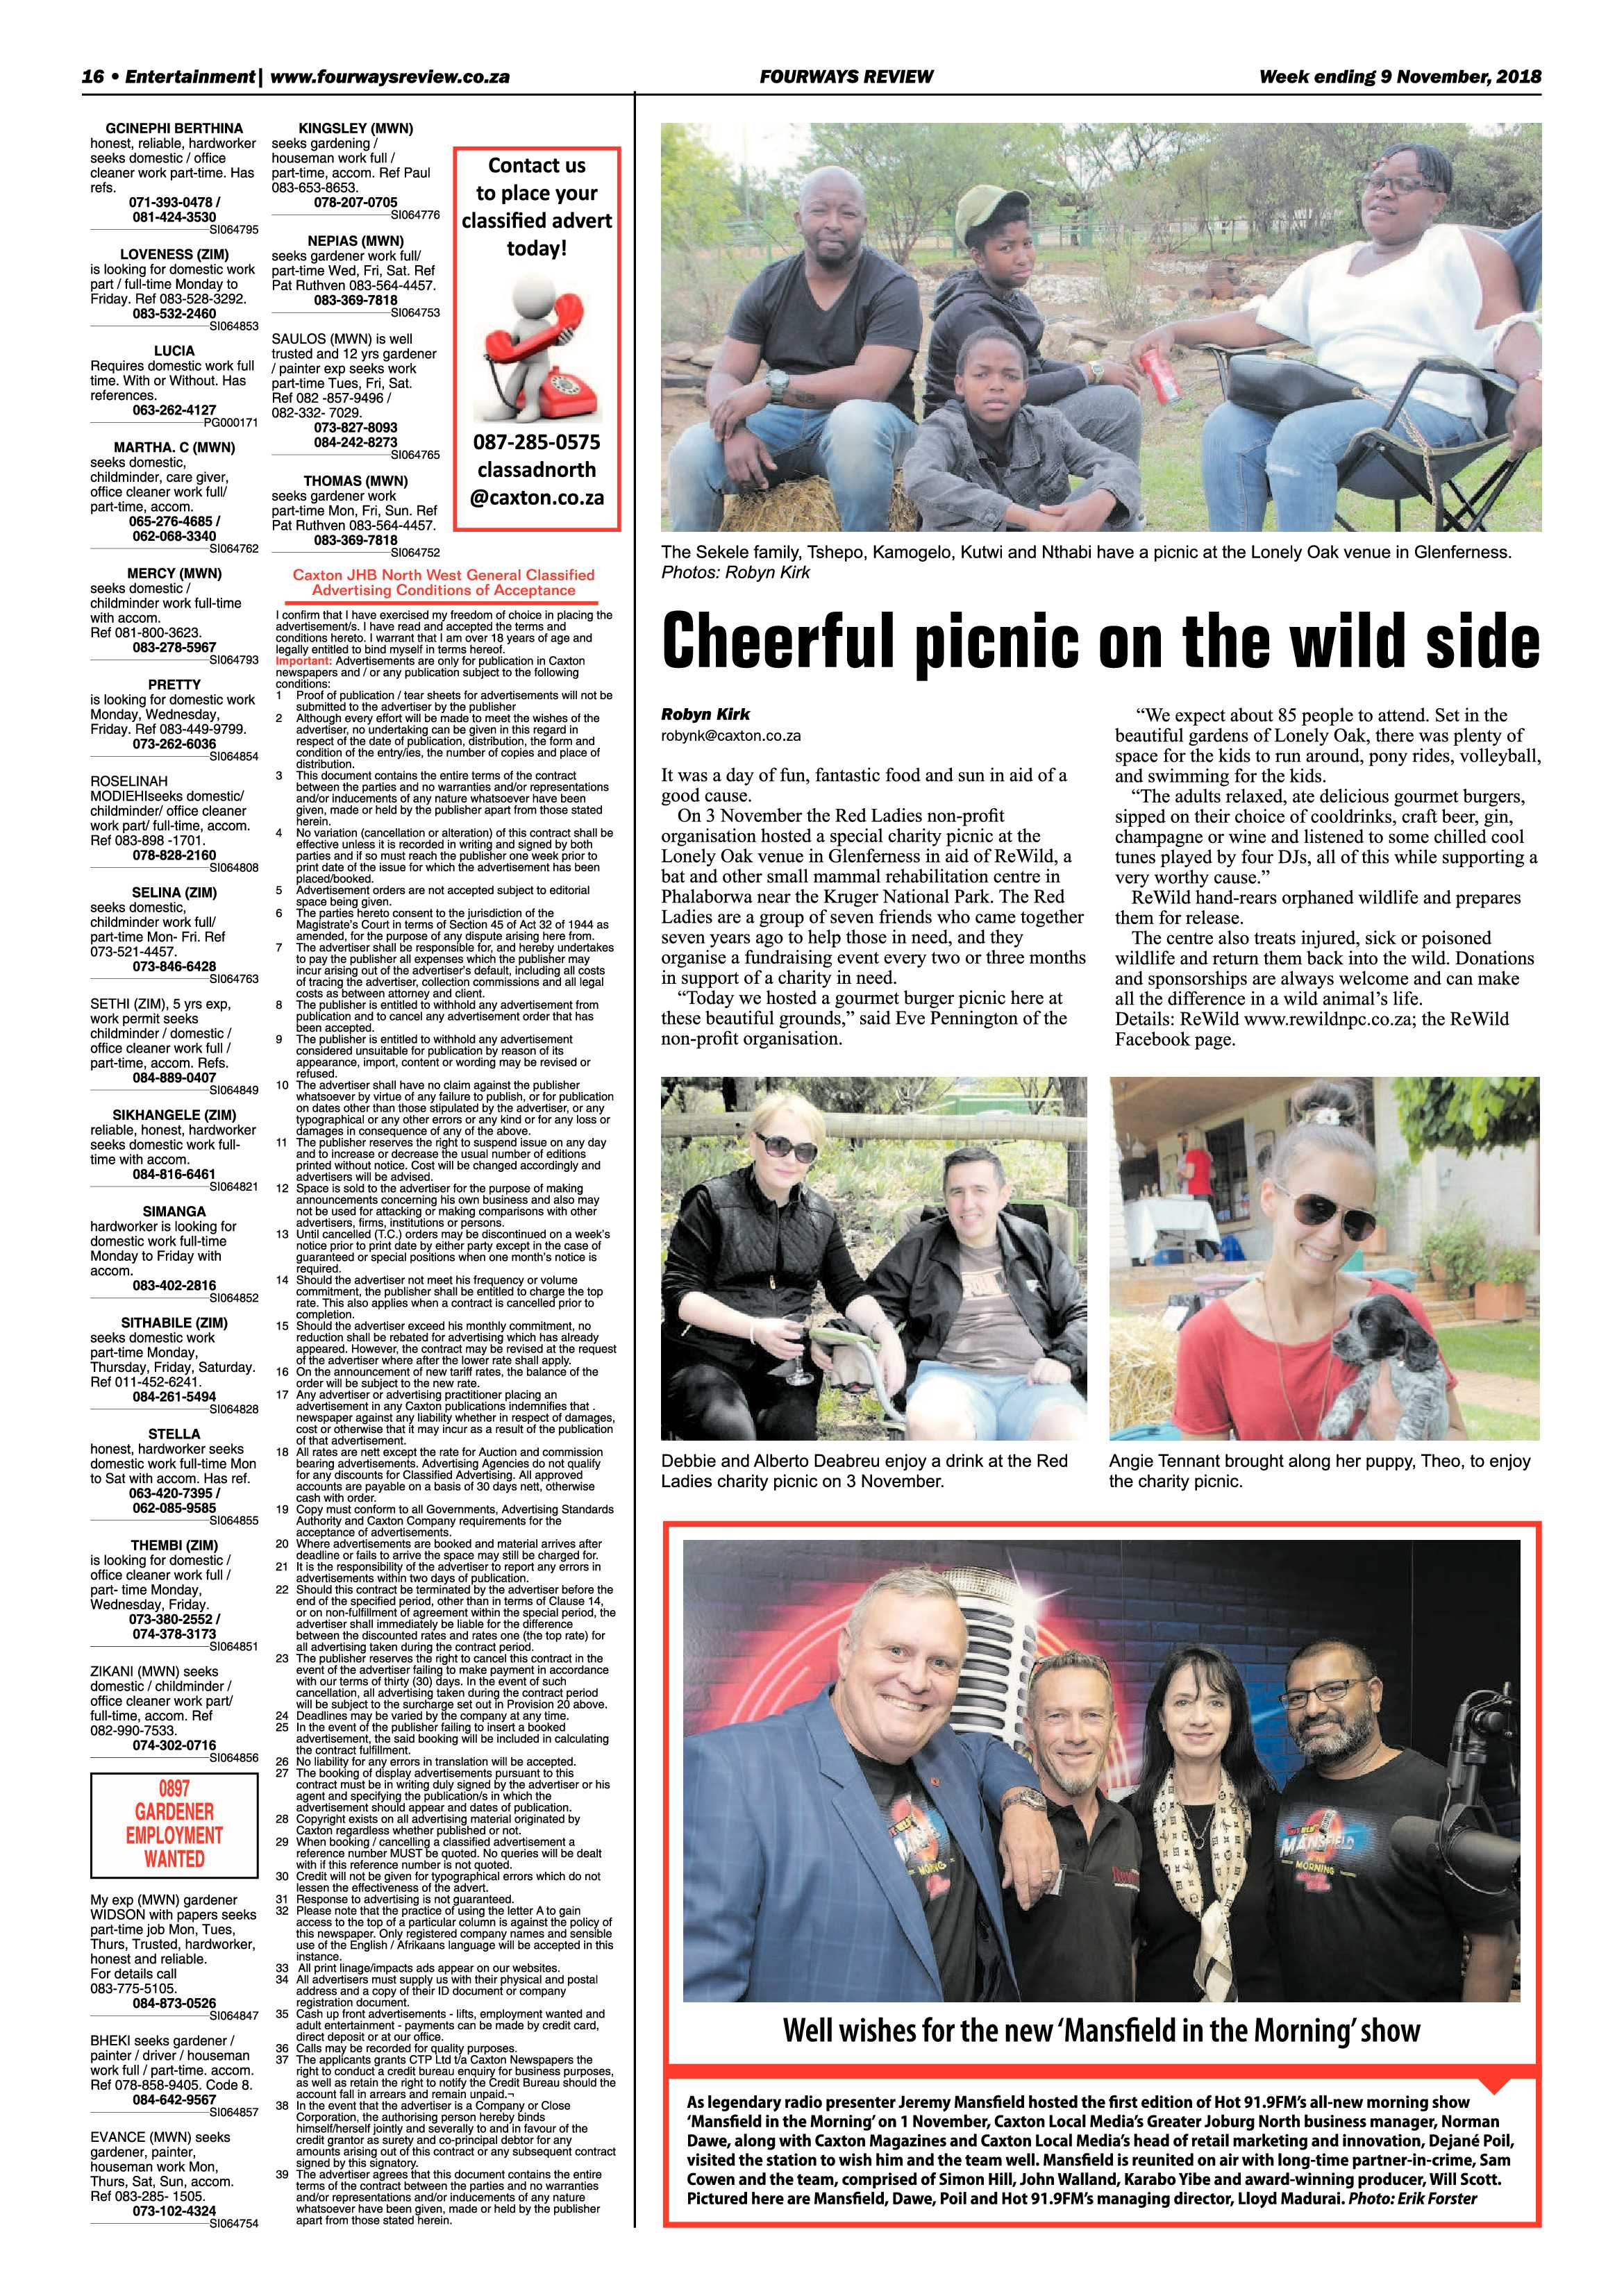 fourways-review-9-november-2018-epapers-page-16